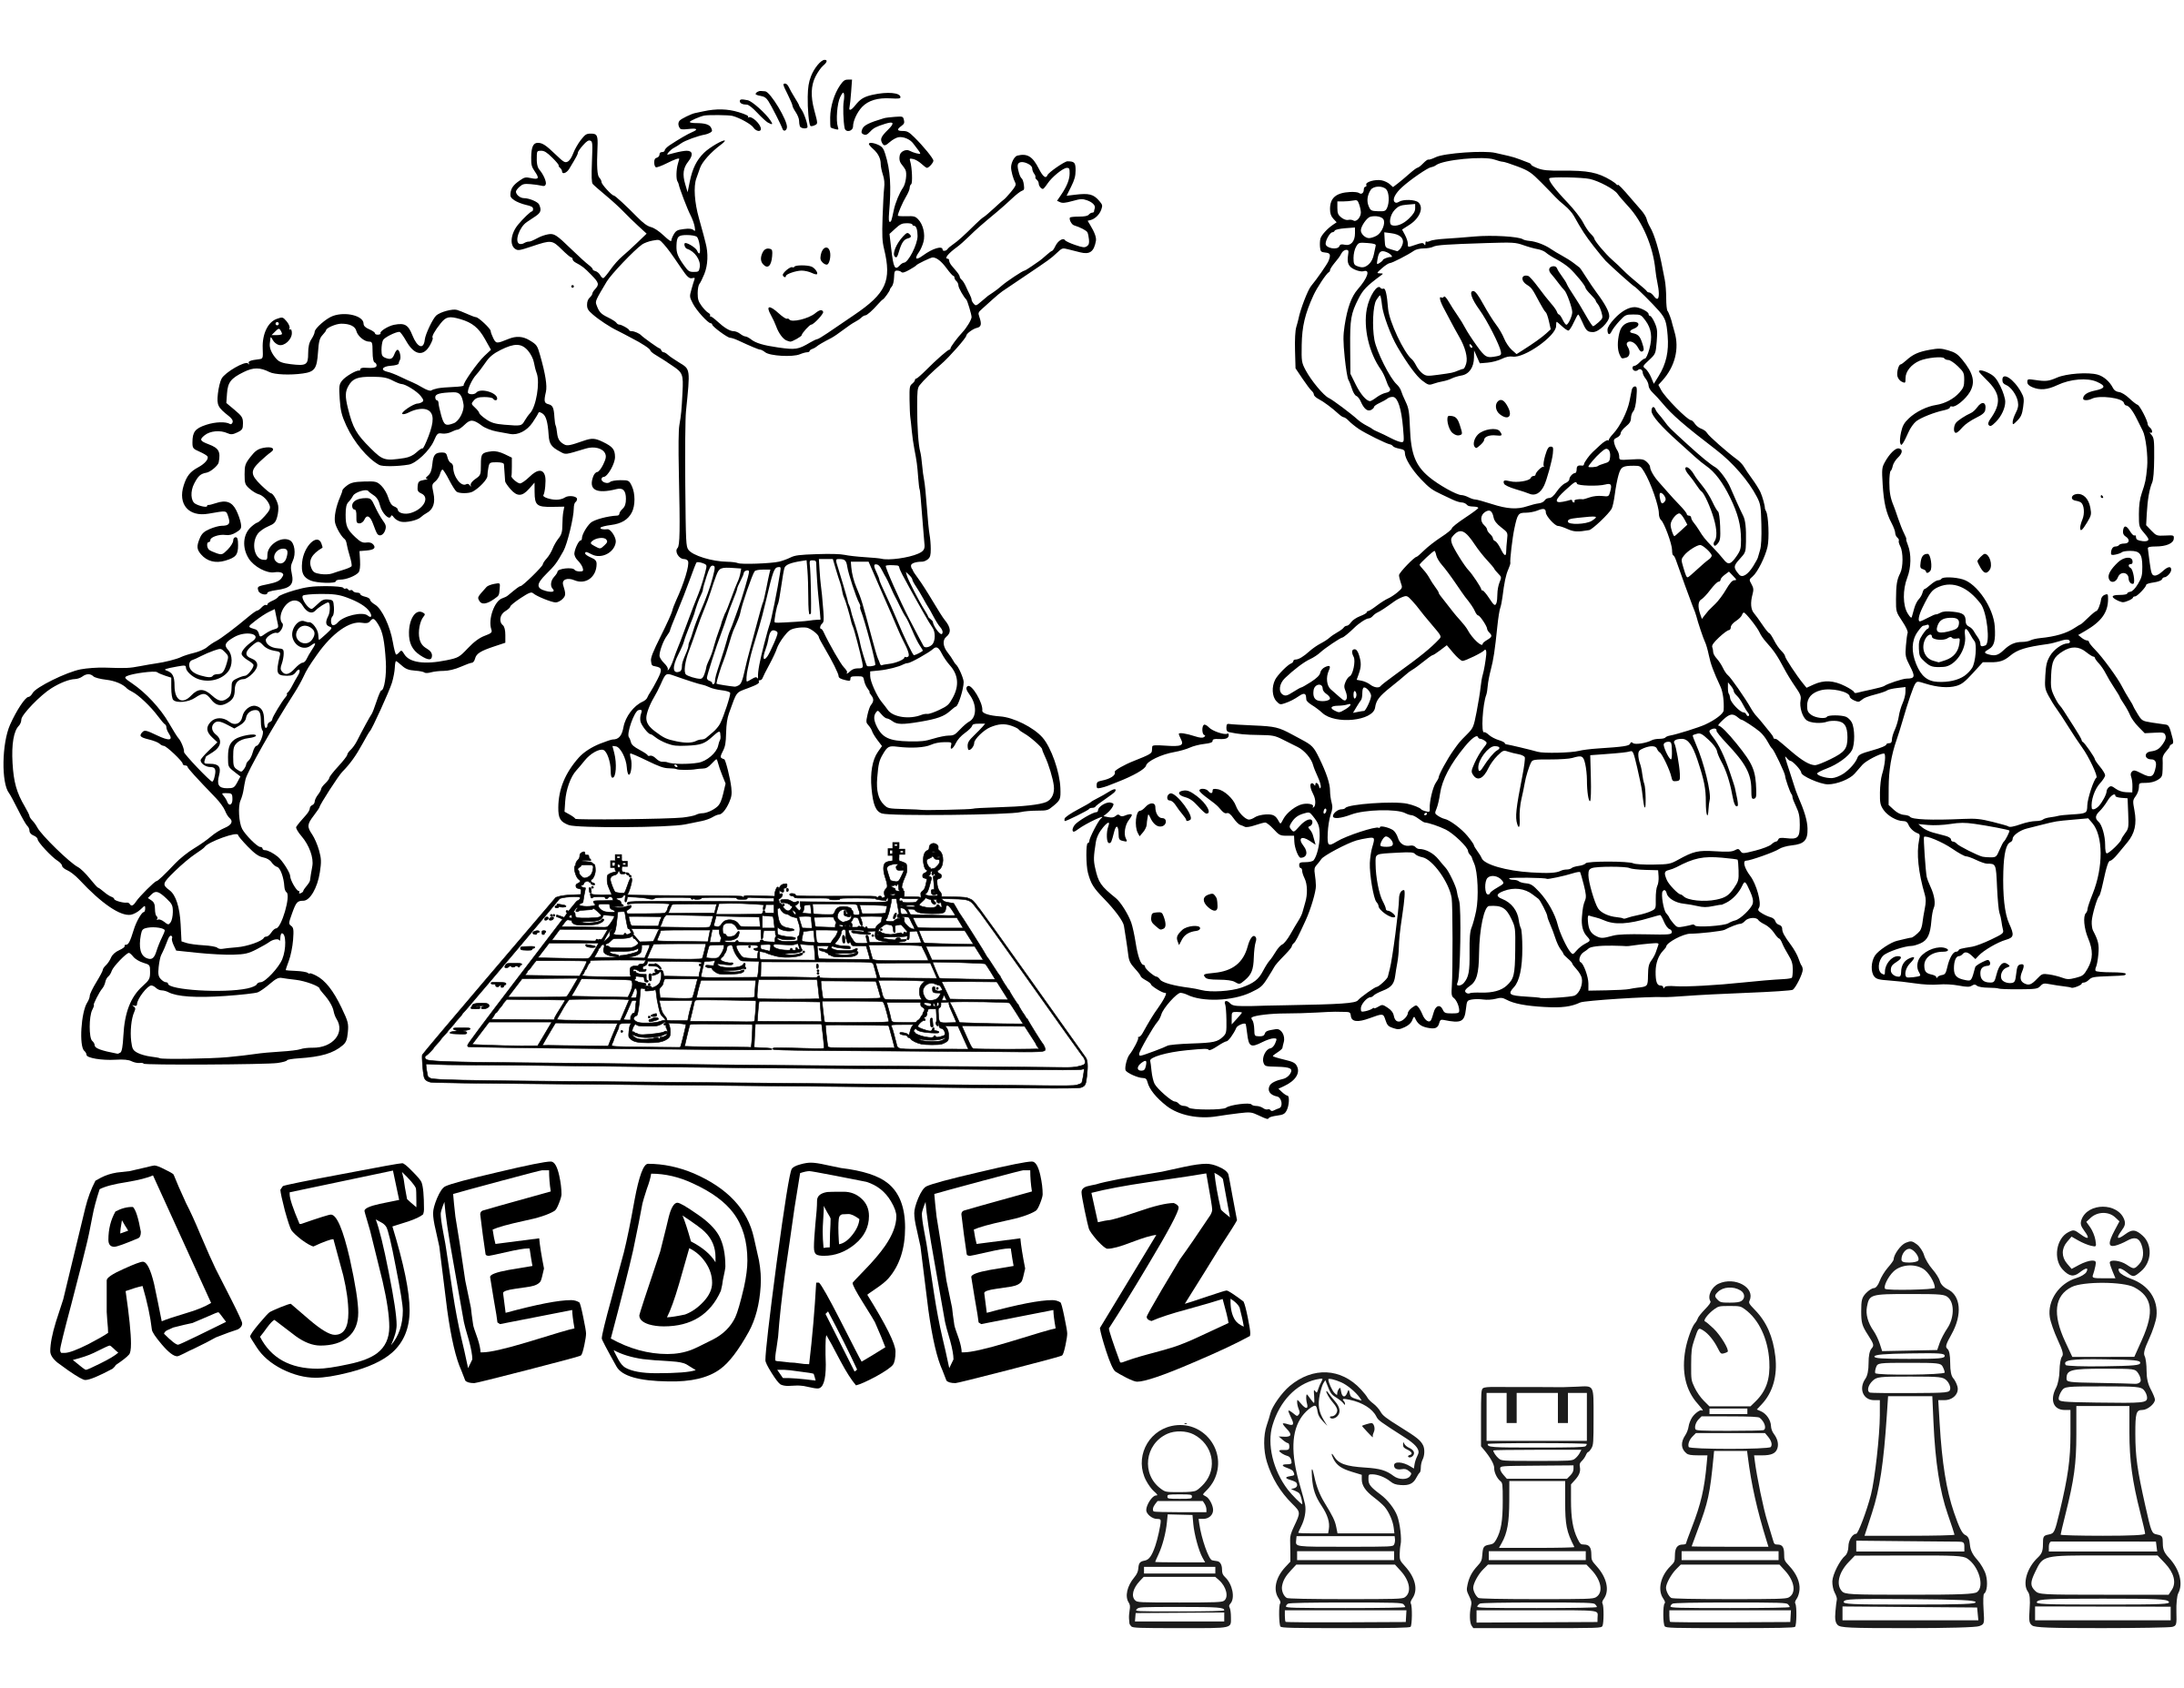 Chess coloring book  / Dibujo Ajedrez para colorear -15- by DG-RA